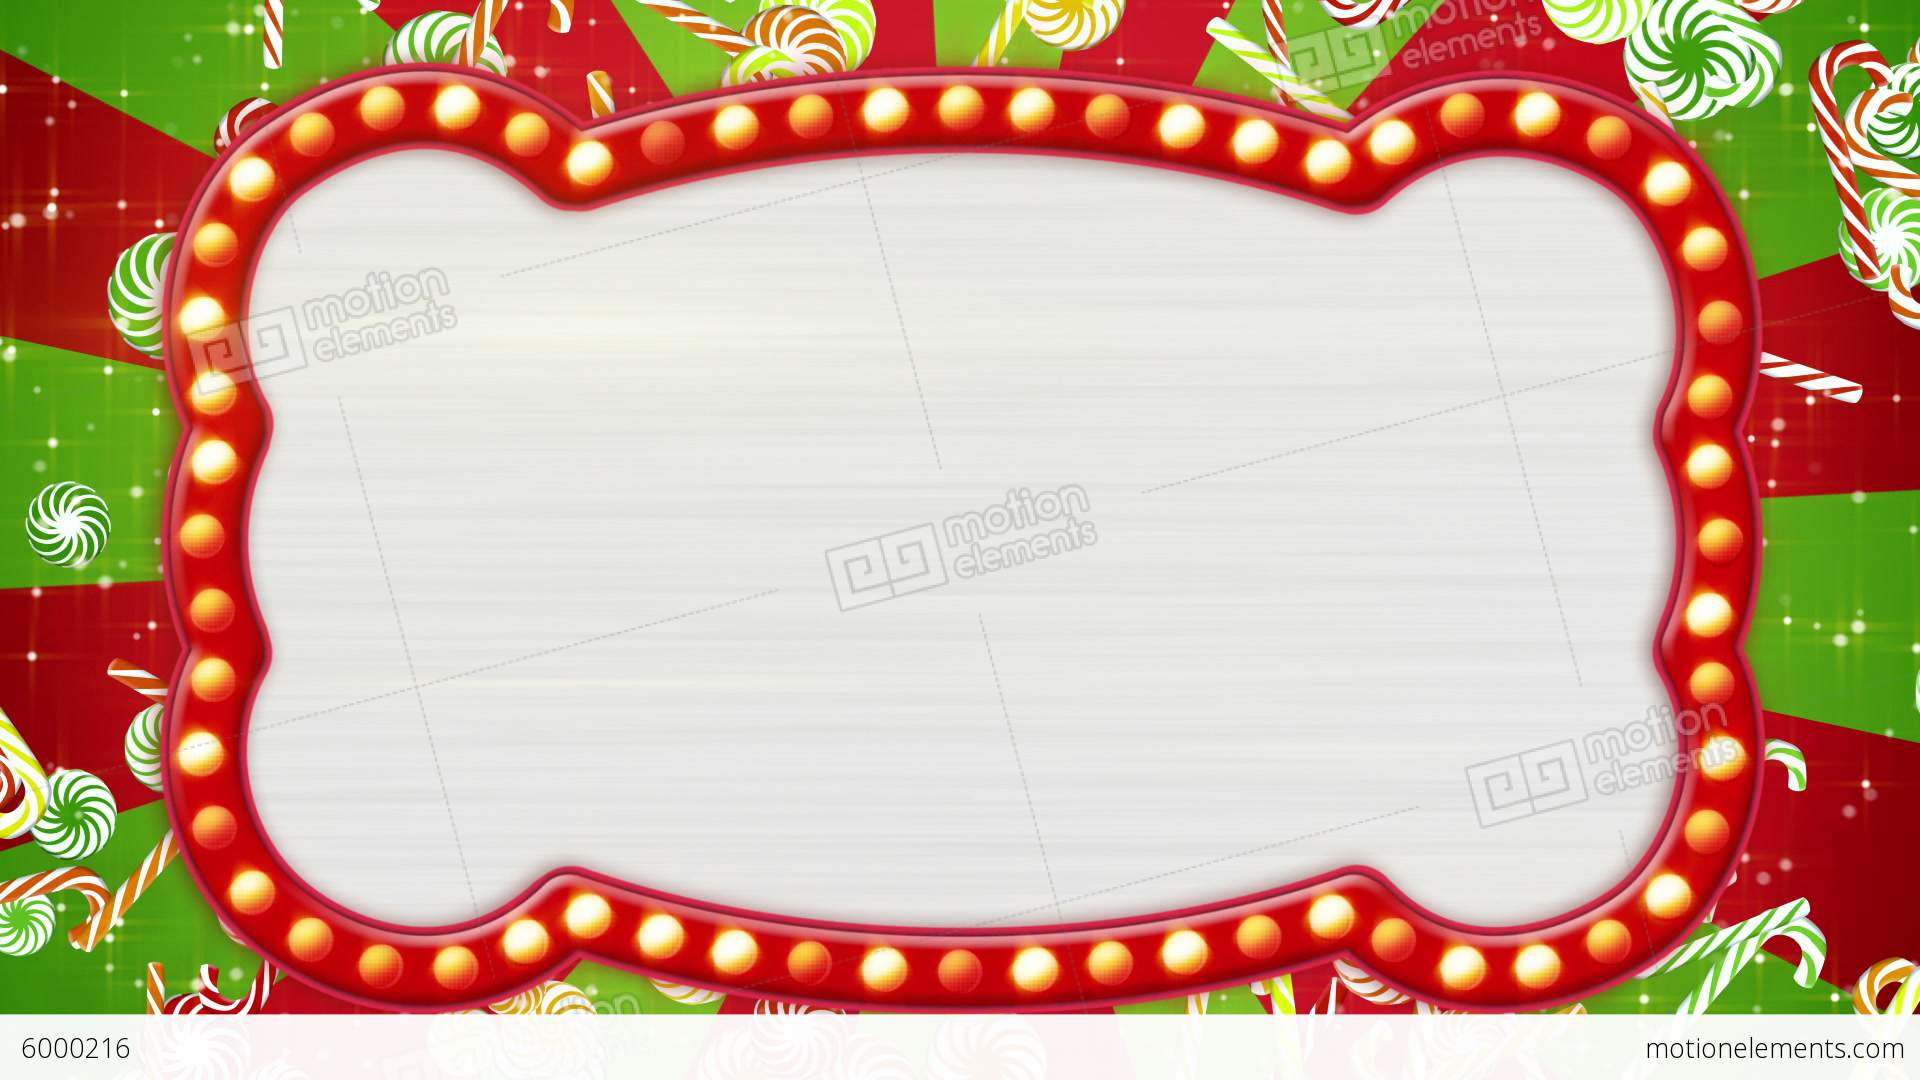 Candy Cane clipart banner Canes Stock And Canes bulbs